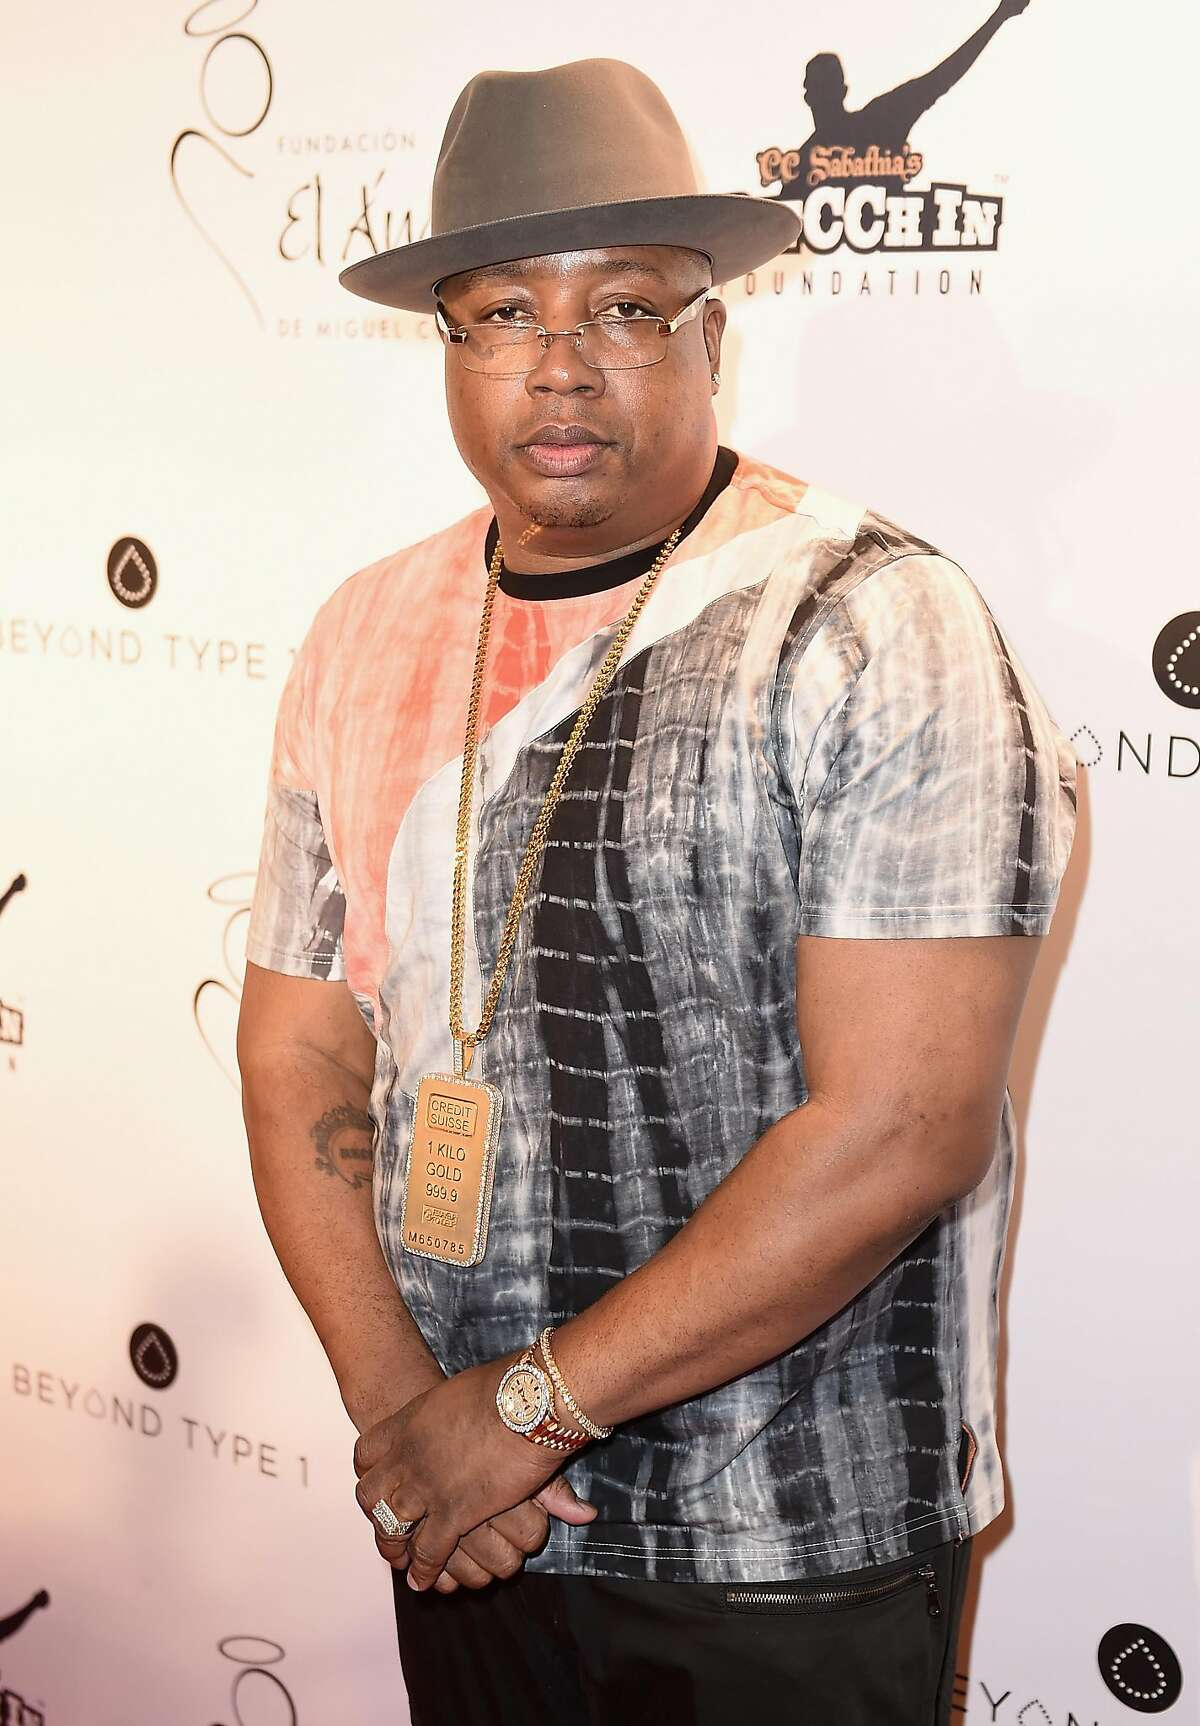 NEW YORK, NY - JULY 21: Rapper E-40 attends the Roc Nation Summer Classic Charity Basketball Tournament at Barclays Center of Brooklyn on July 21, 2016 in New York City. (Photo by Nicholas Hunt/Getty Images)